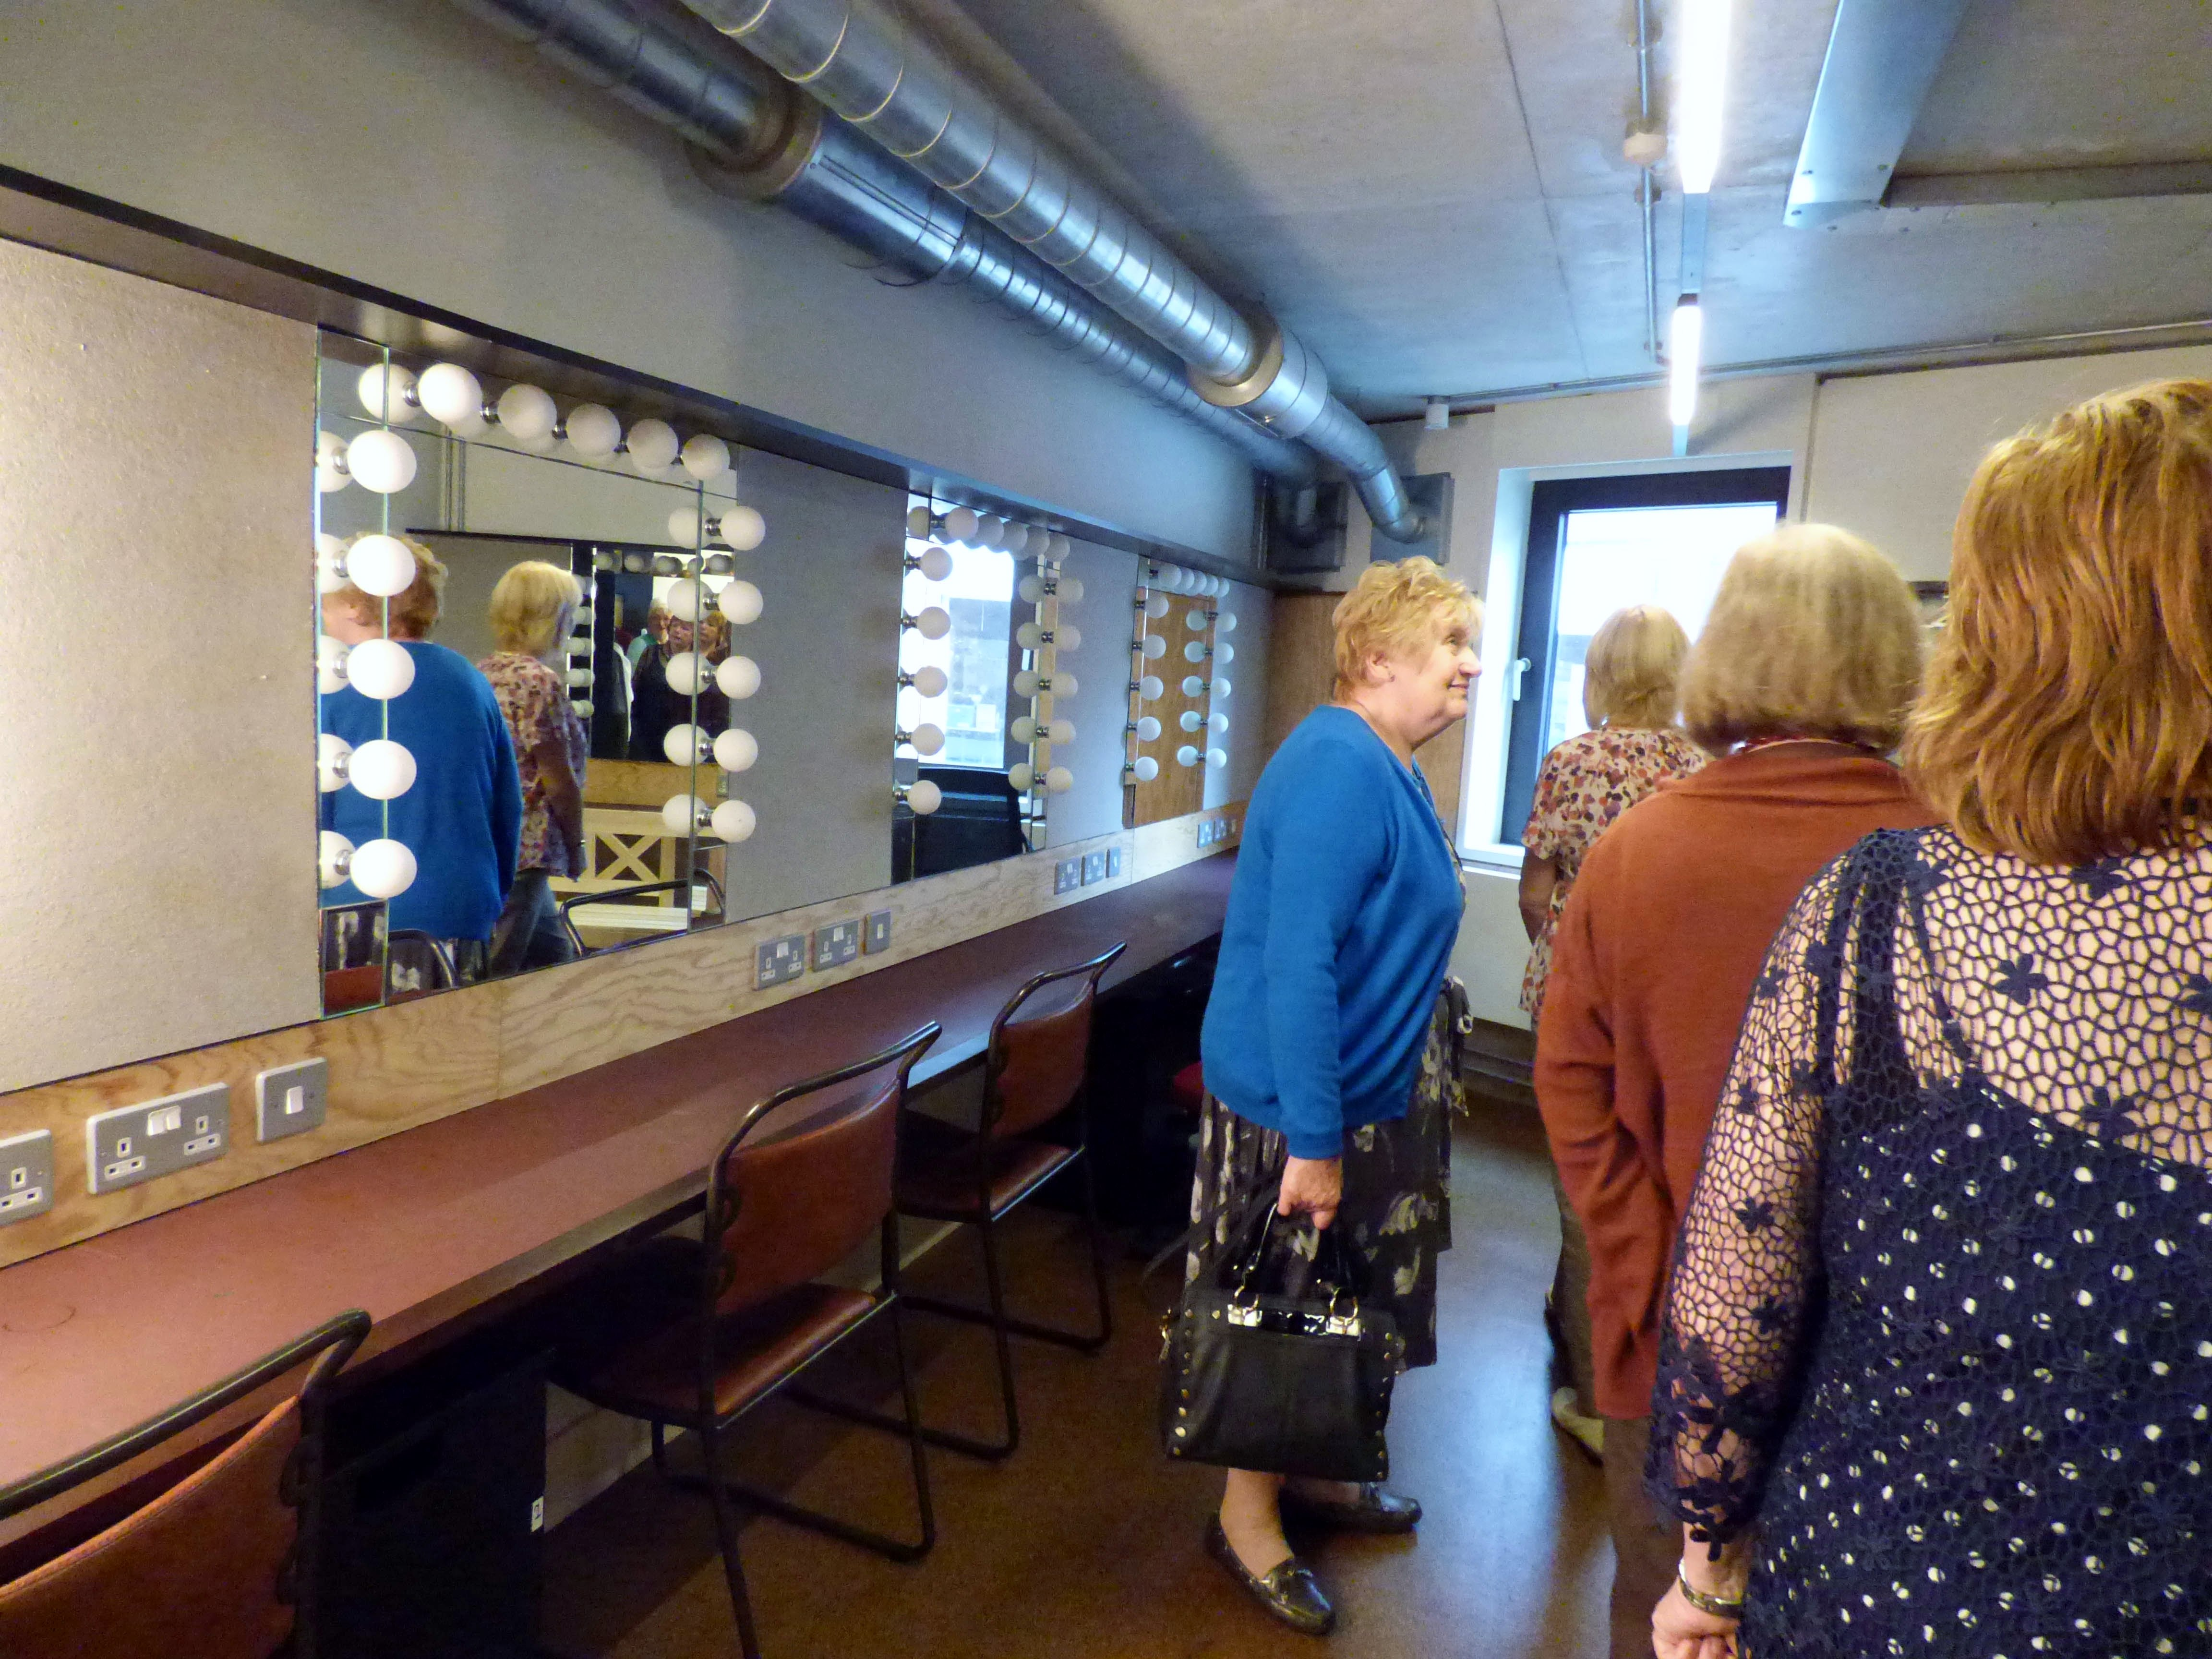 The accessible dressing room of Everyman Theatre, Liverpool, July 2016. There are 4 other dressing rooms in the theatre.